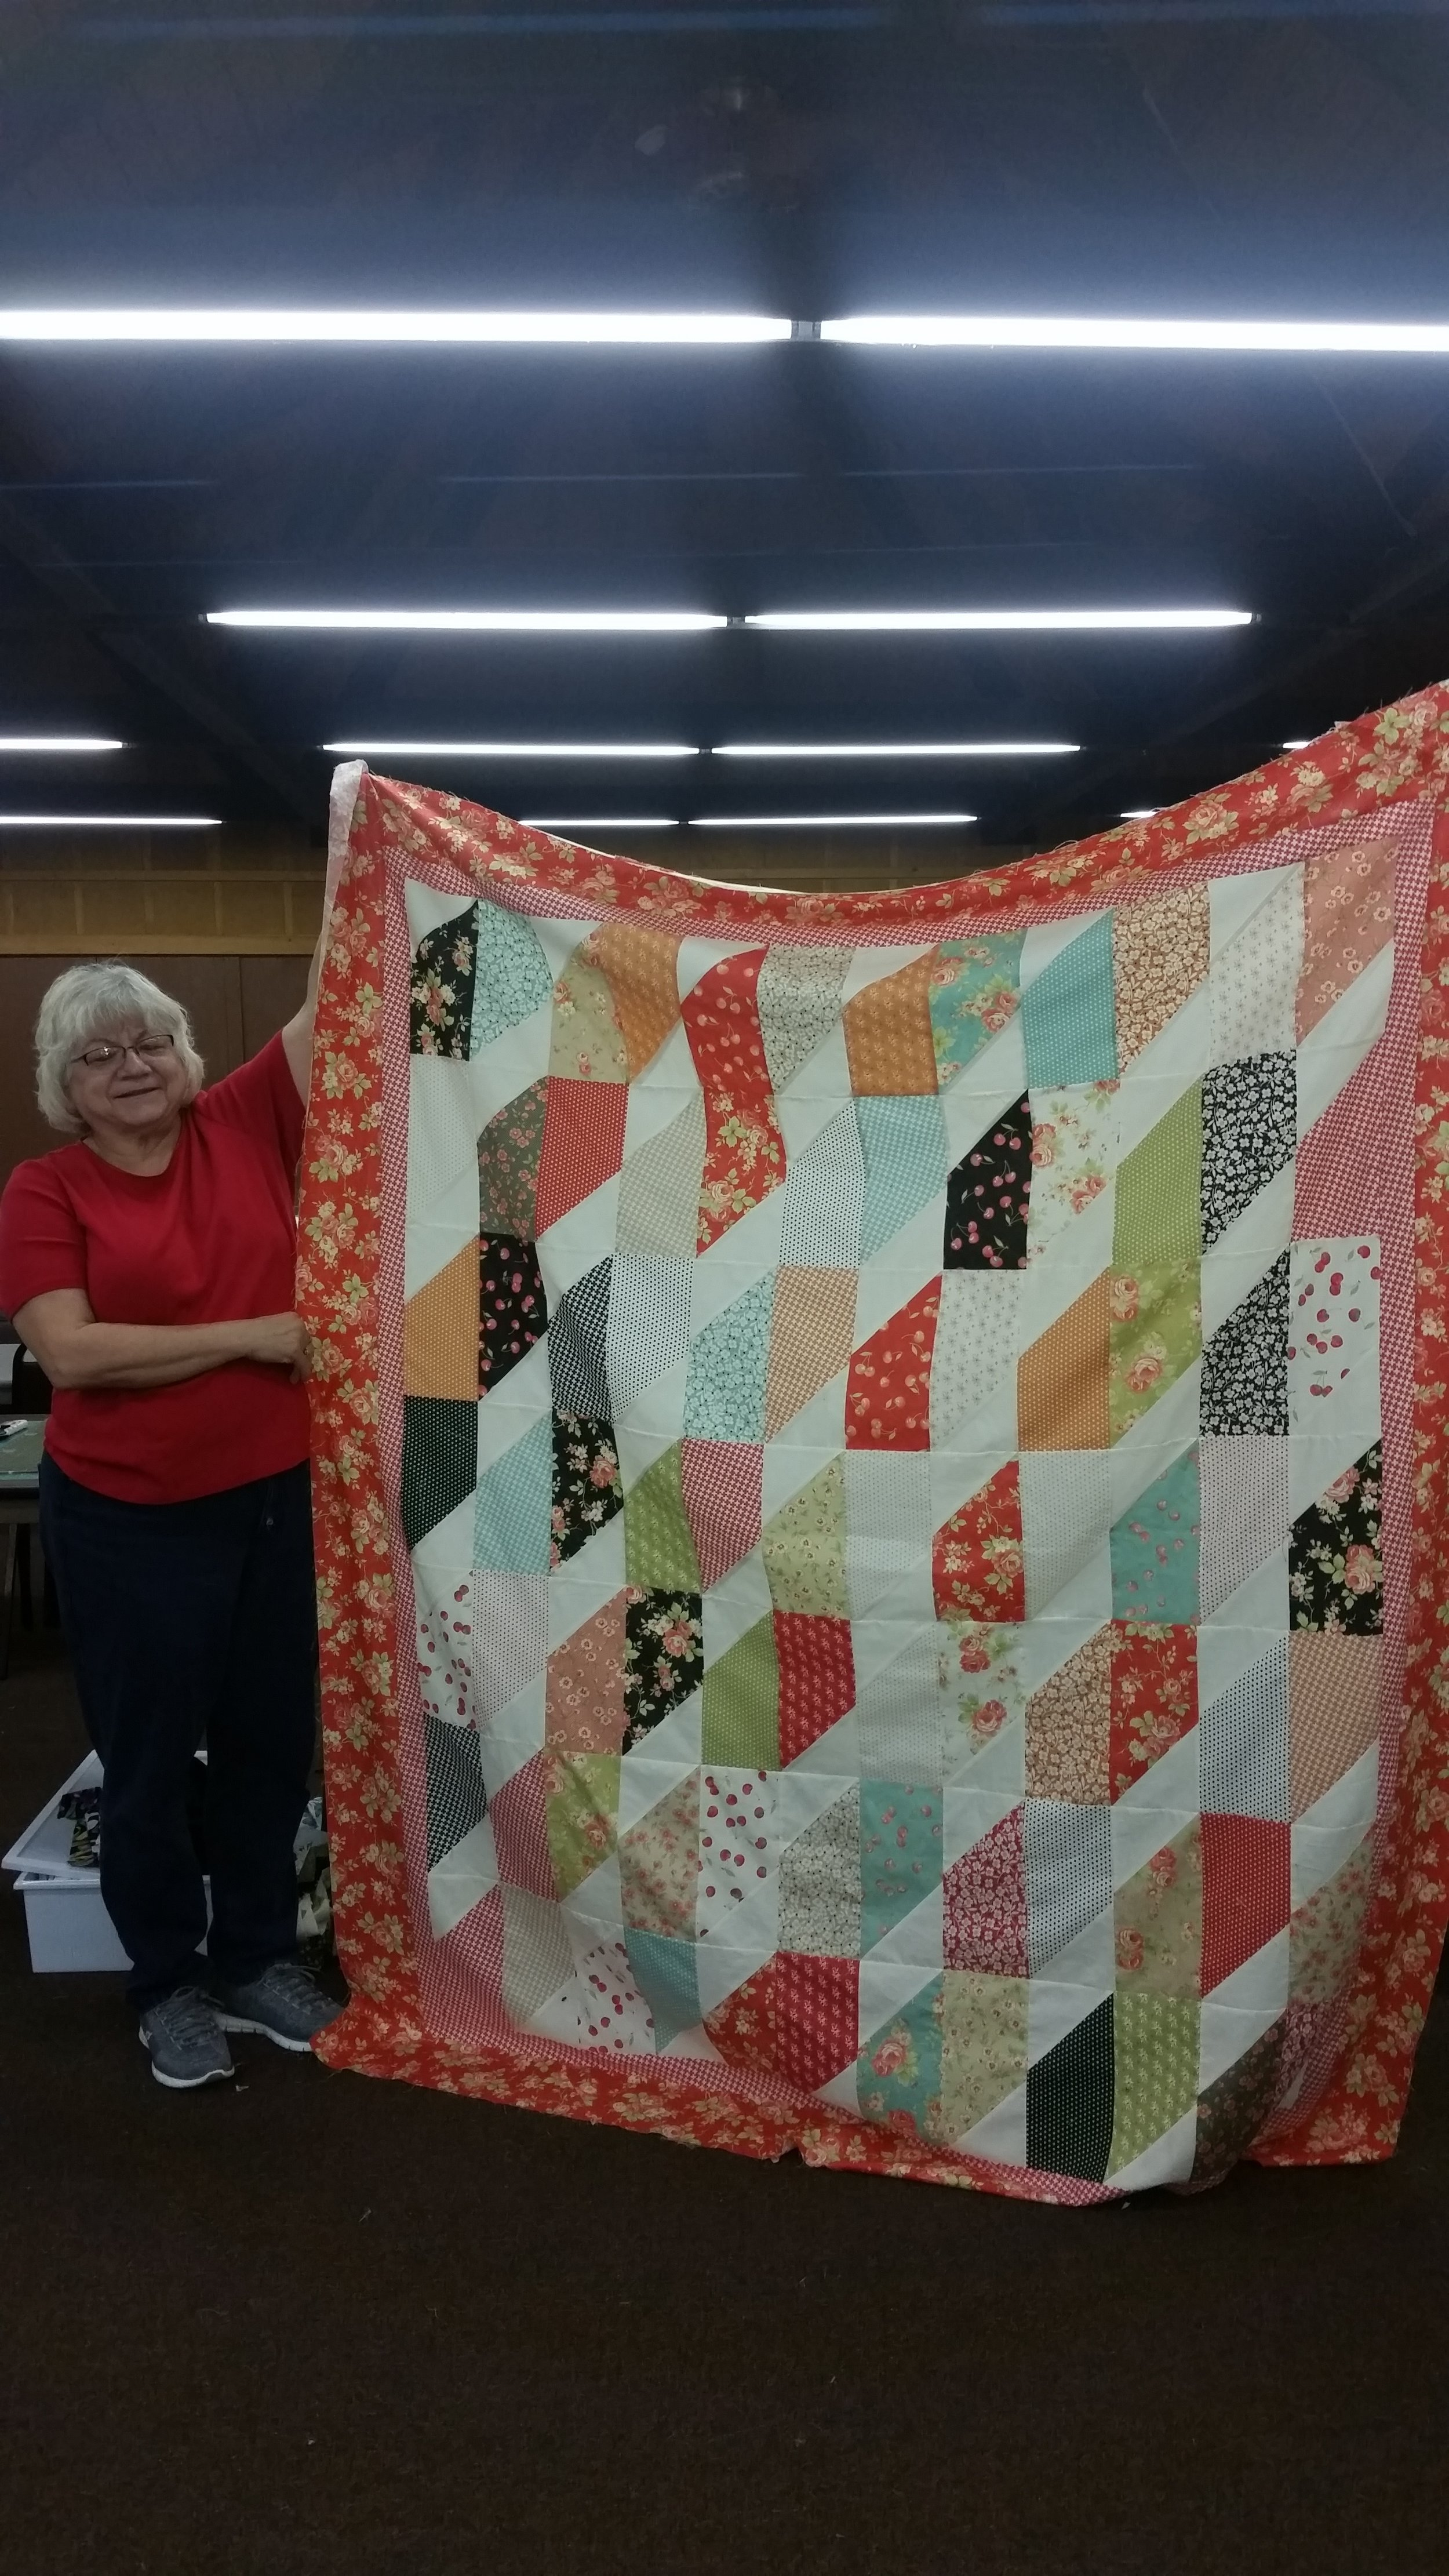 Bev Campbell's Mystery Quilt